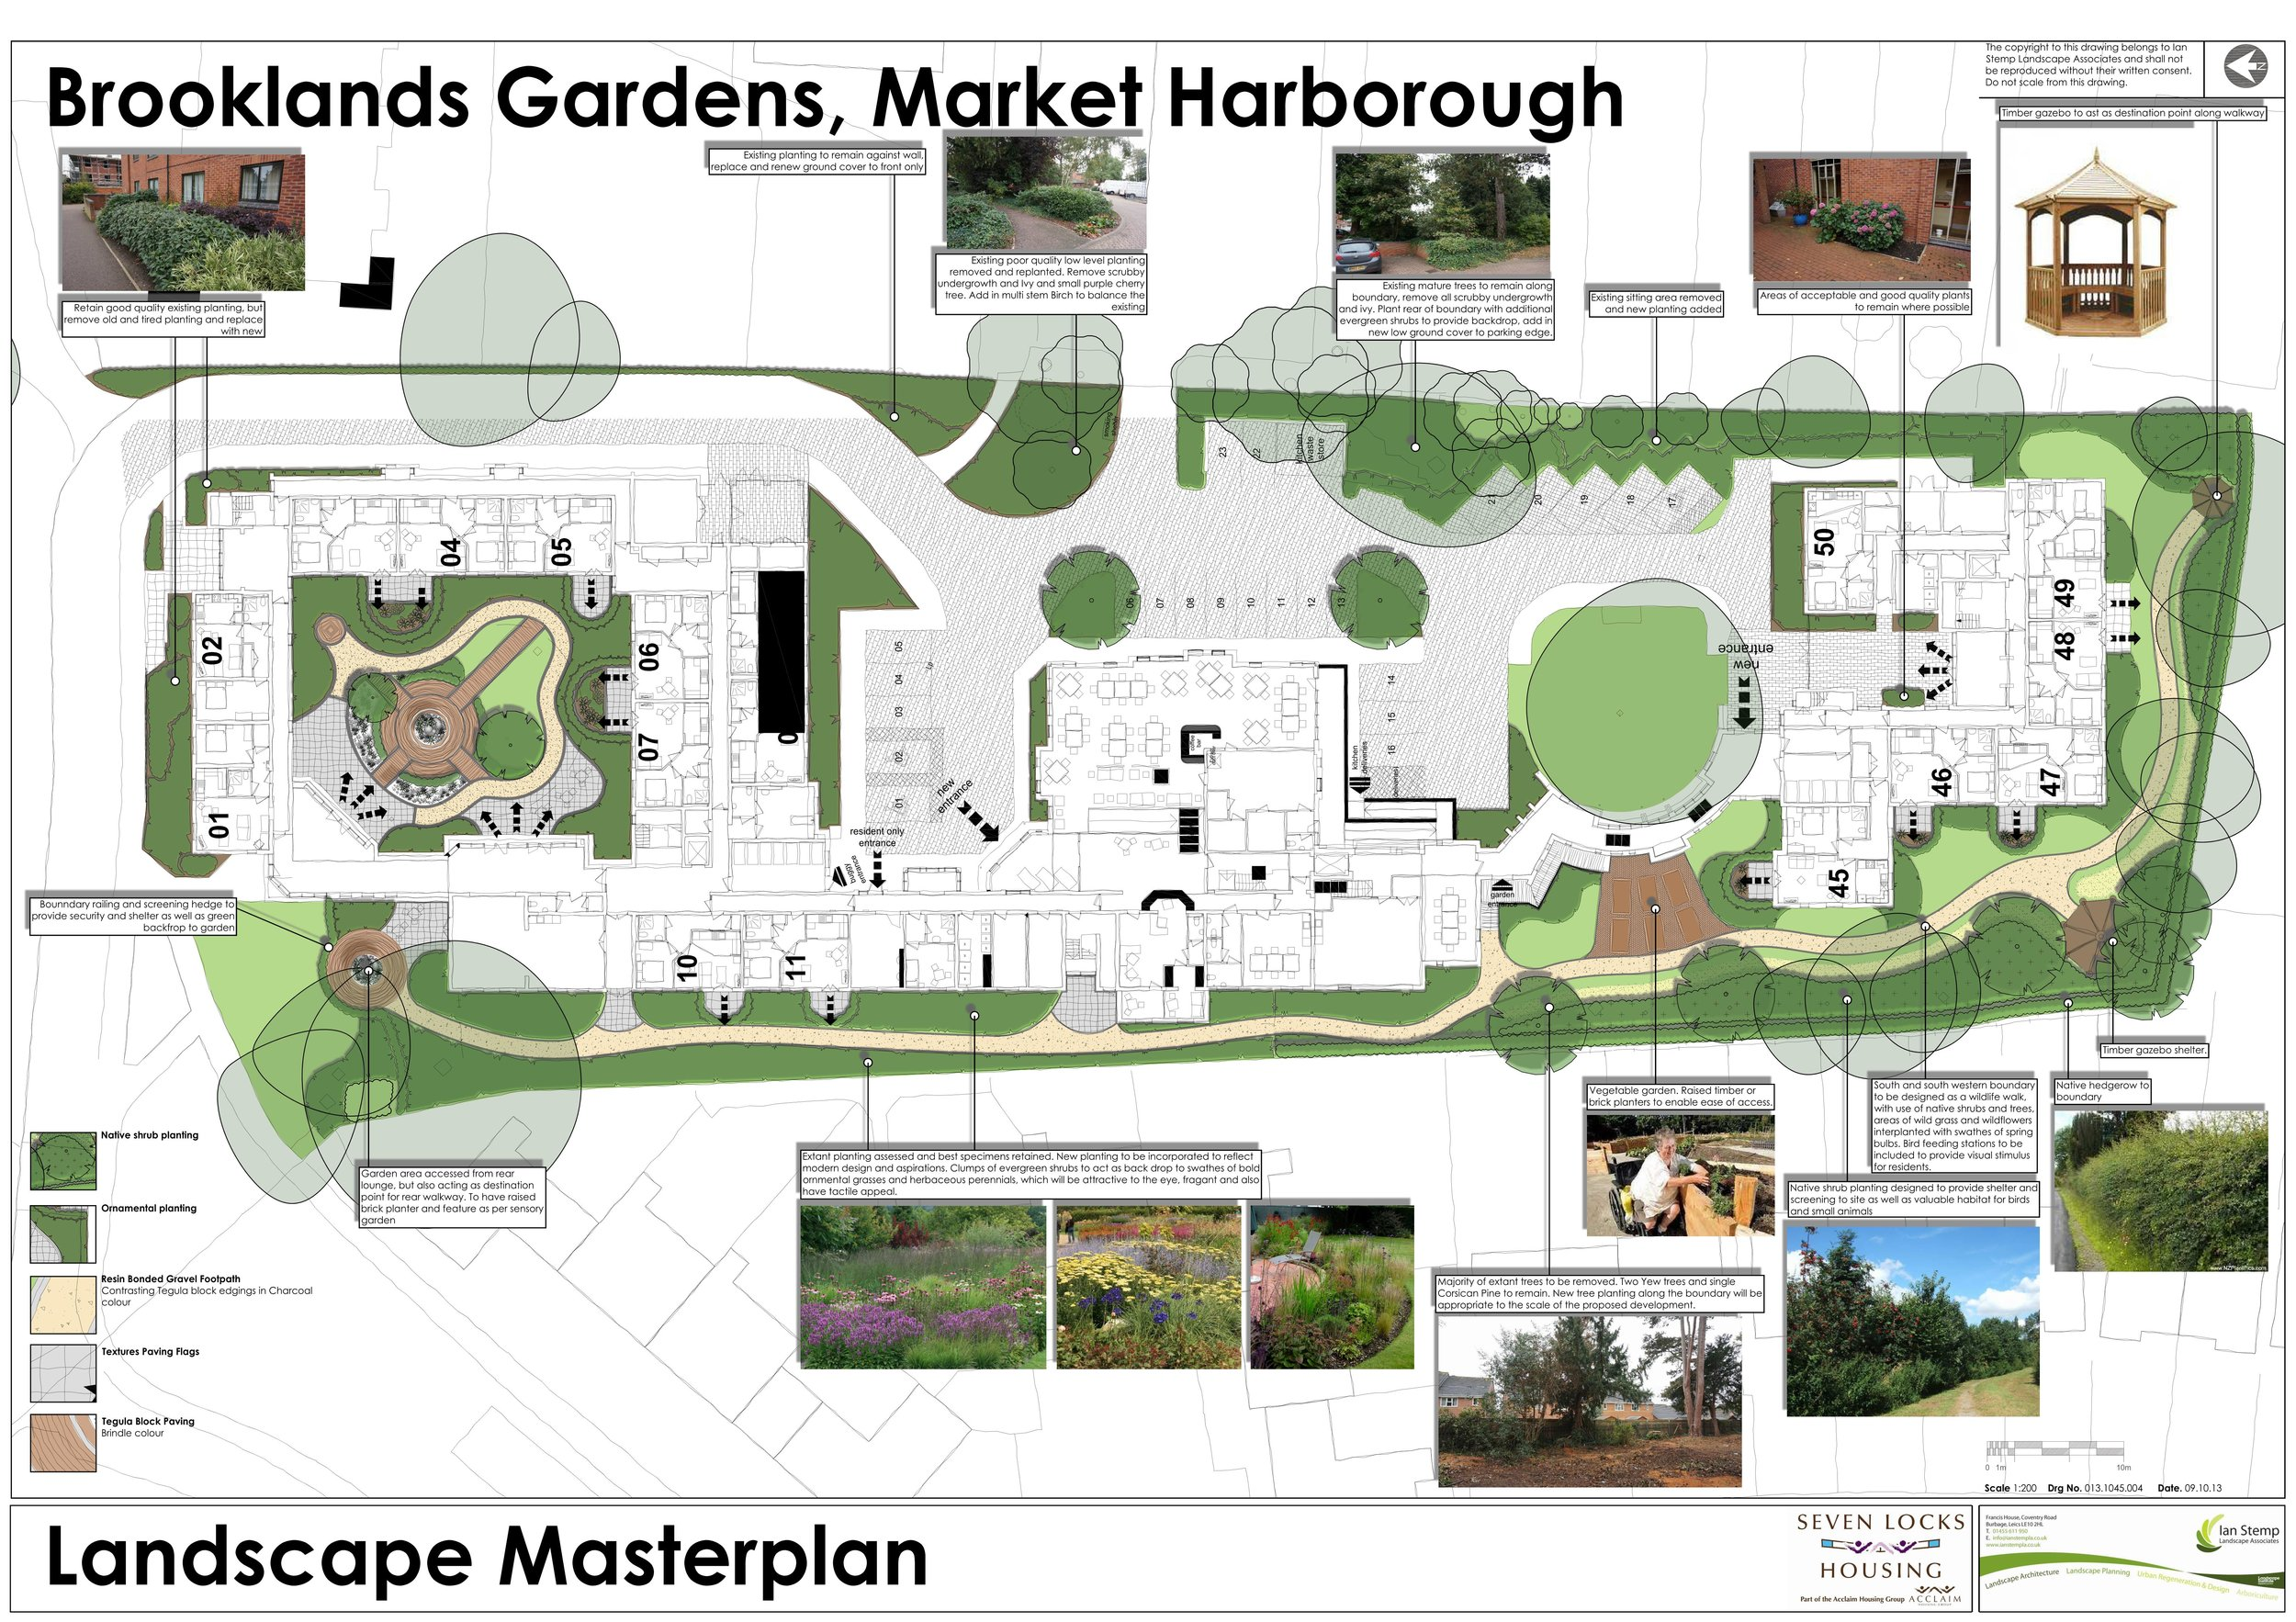 013.1045.004 Brooklands Gardens Masterplan_Page_1.jpeg